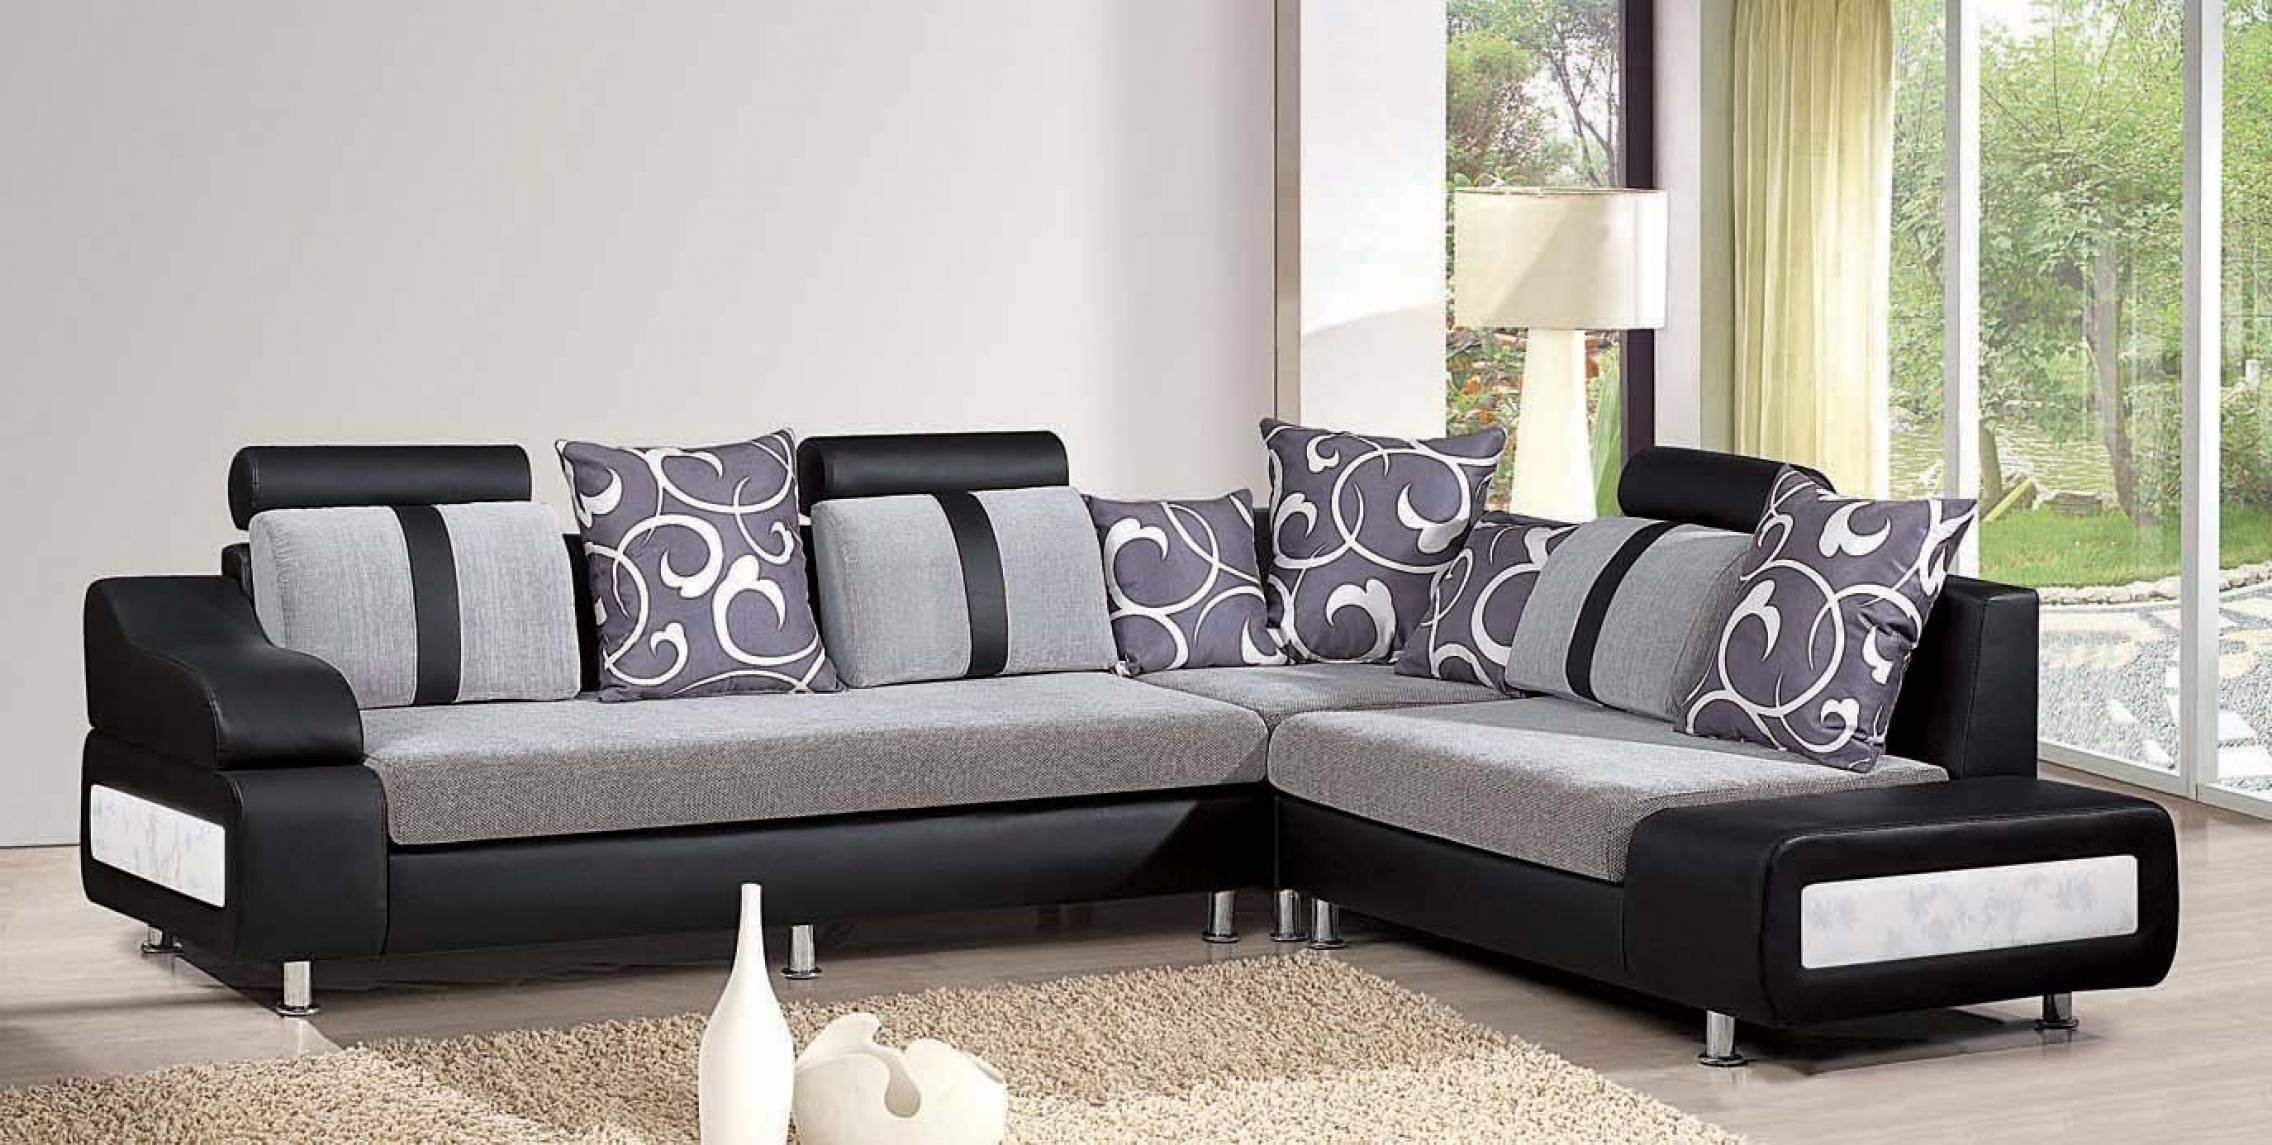 Favorite Sofas And Chairs Regarding Sofas And Chairs (View 3 of 15)